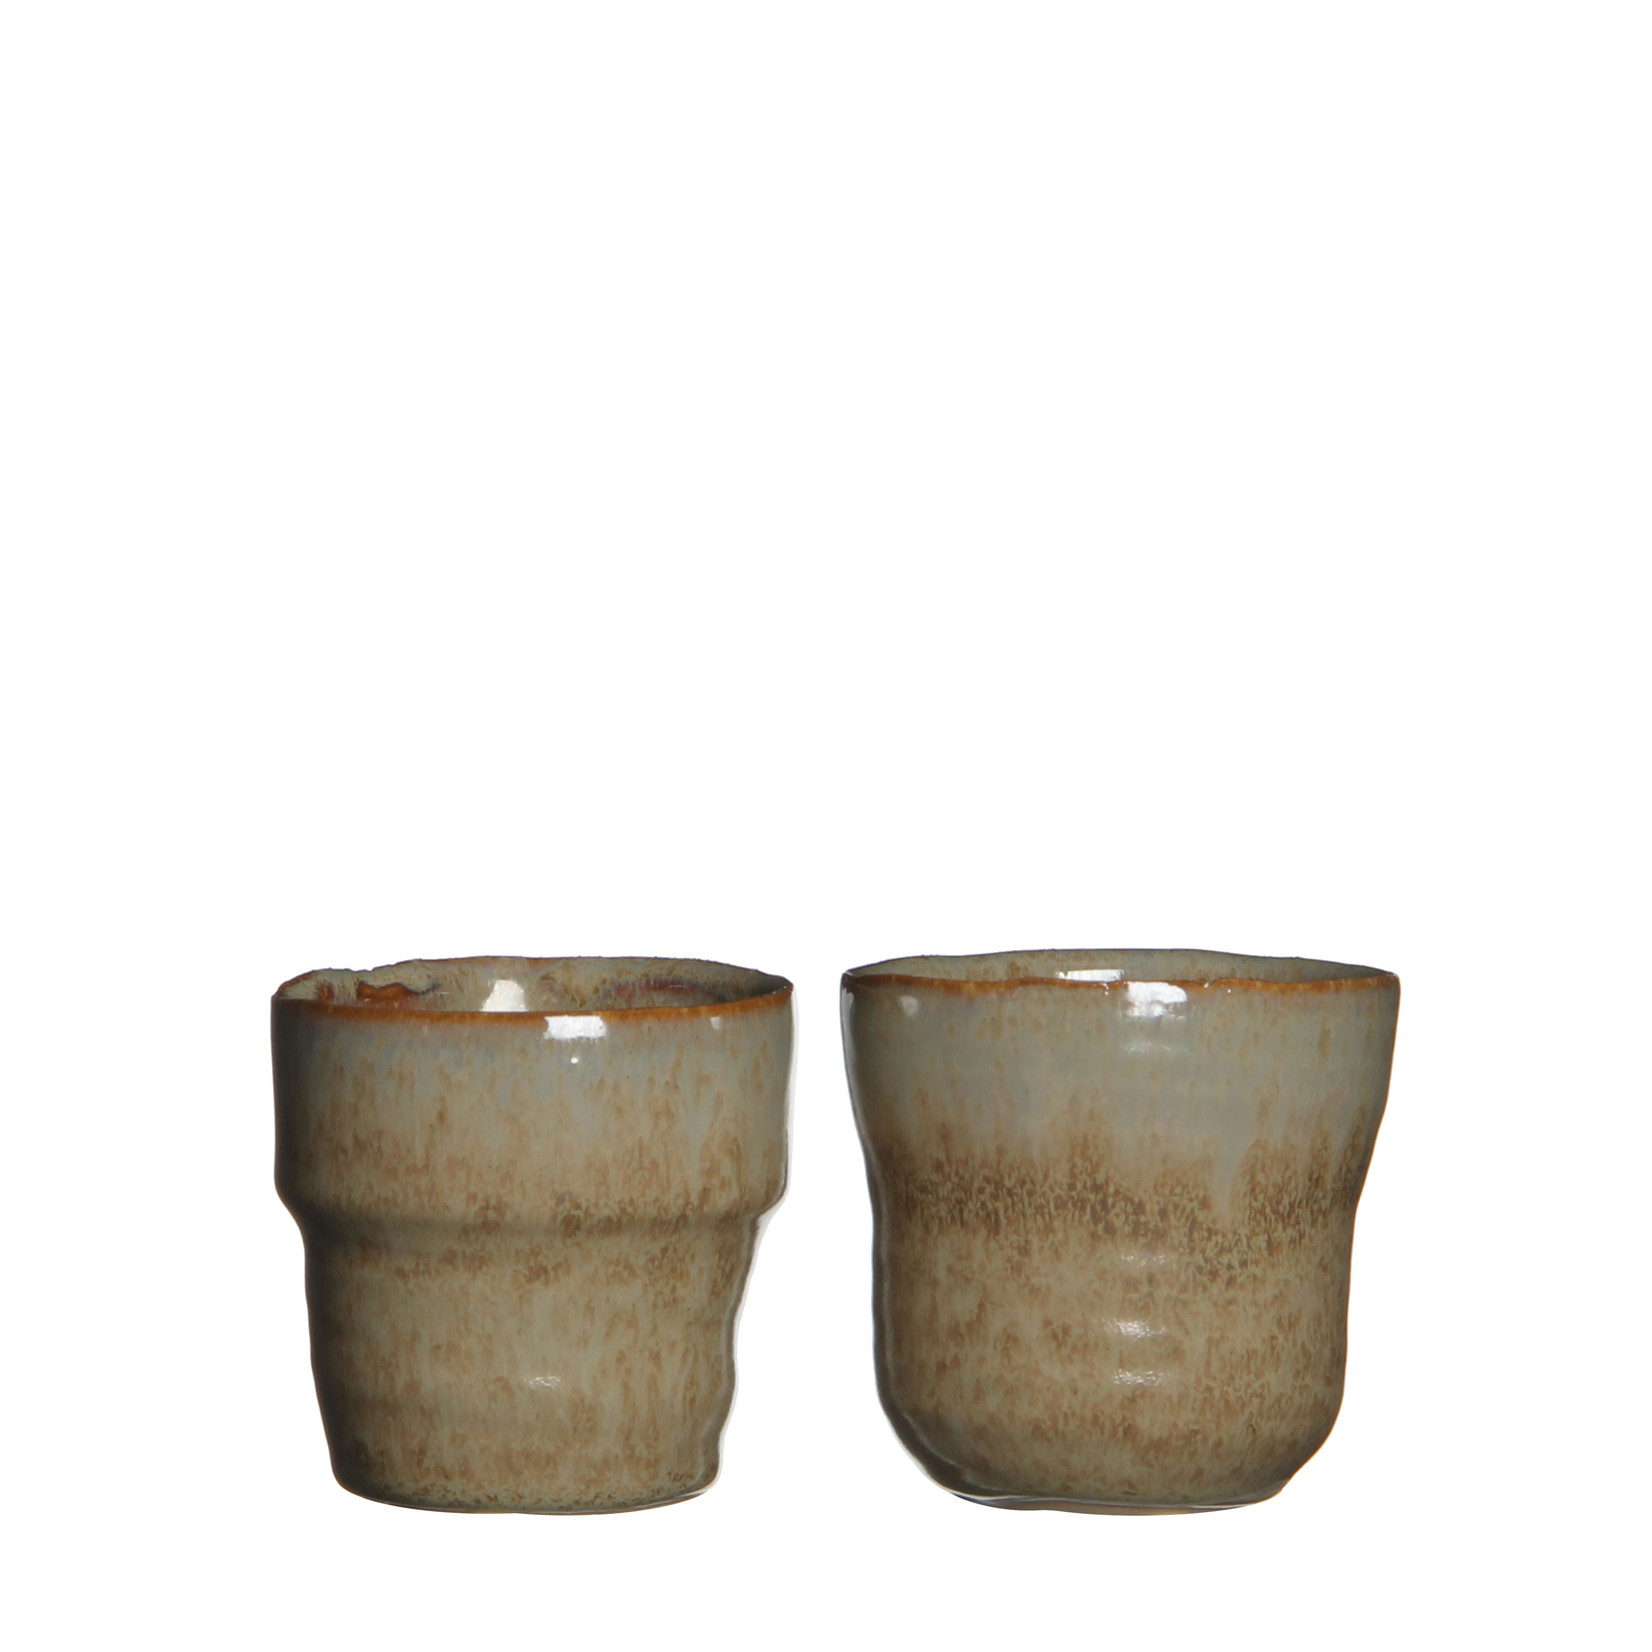 MiCa 1006526 Stef pot rond taupe